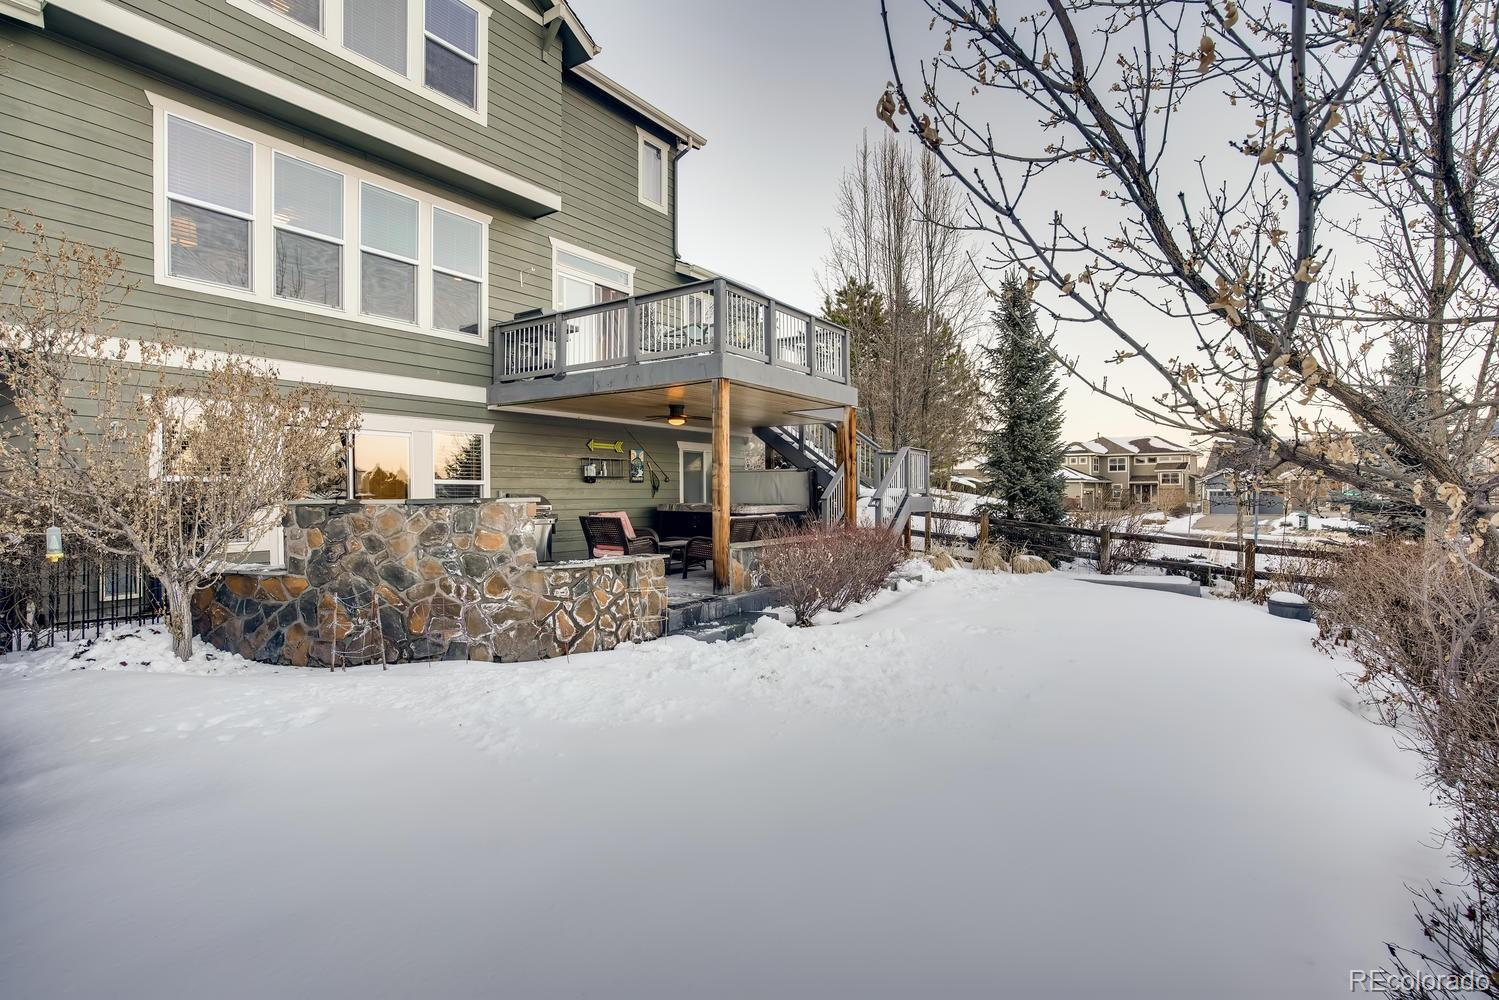 MLS# 5896845 - 28 - 6580 S Ames Court, Littleton, CO 80123